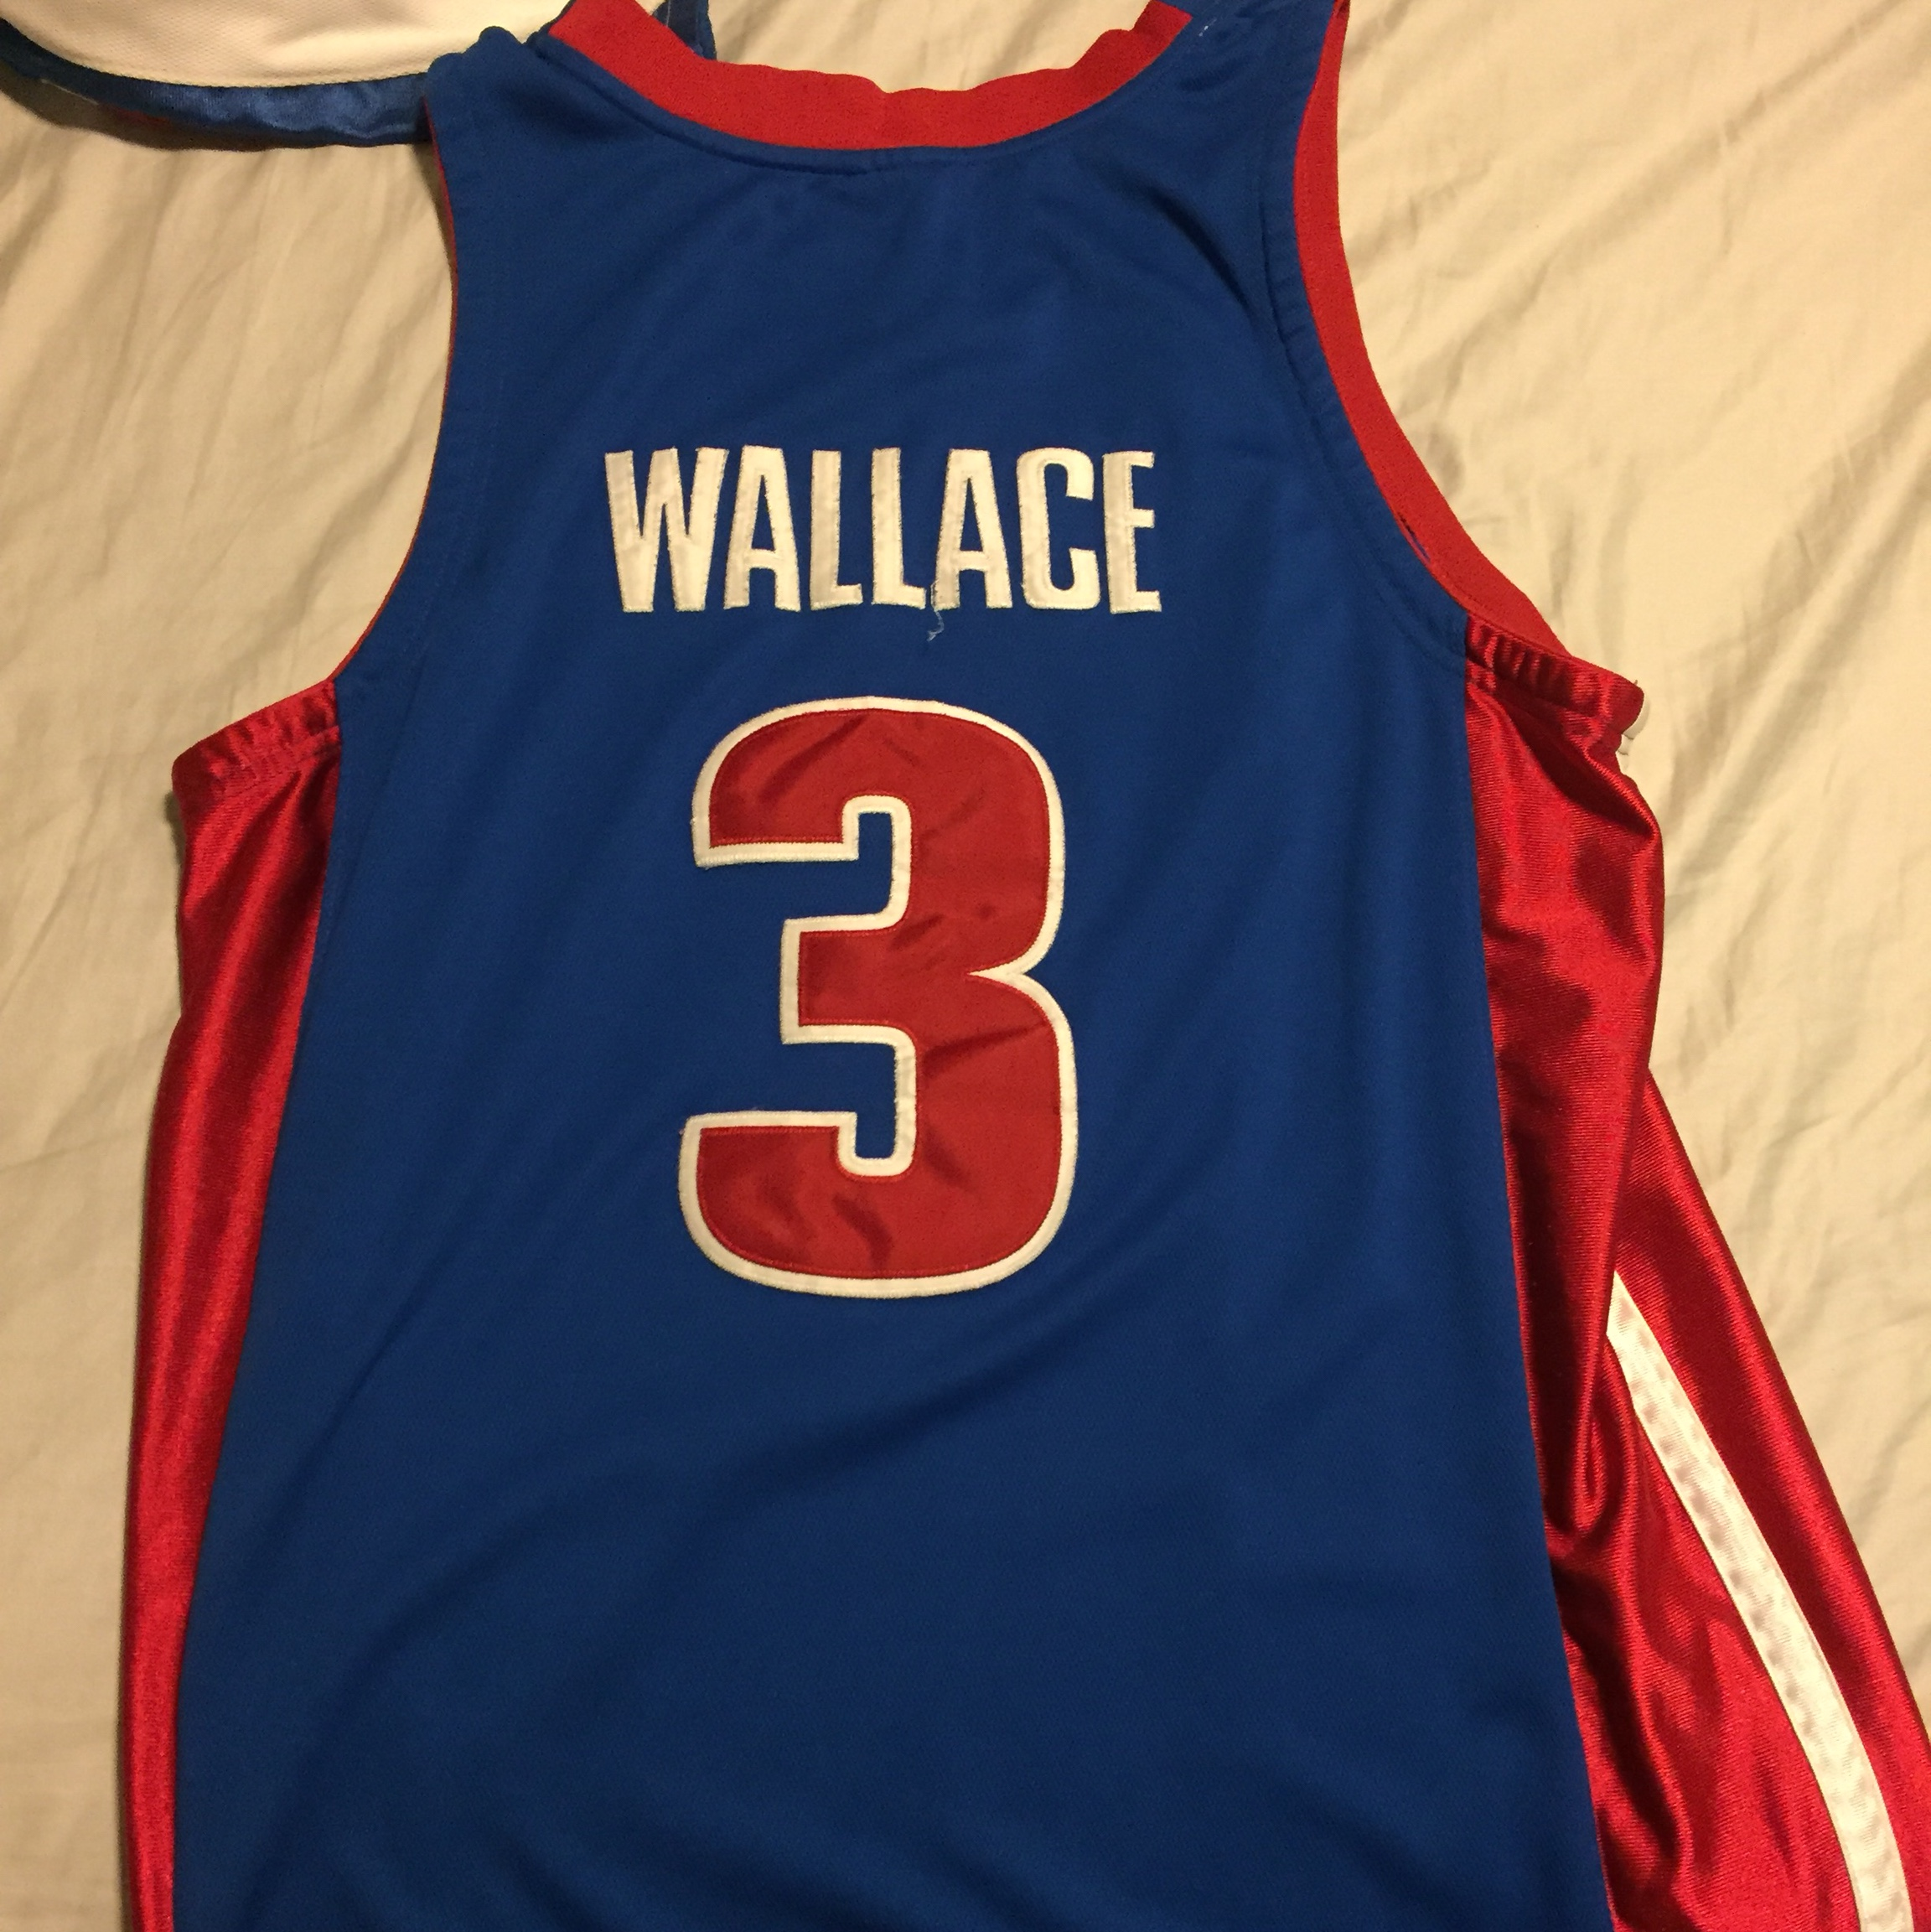 cheap for discount af1bd 97dad Ben Wallace Detroit pistons throwback jersey - Depop